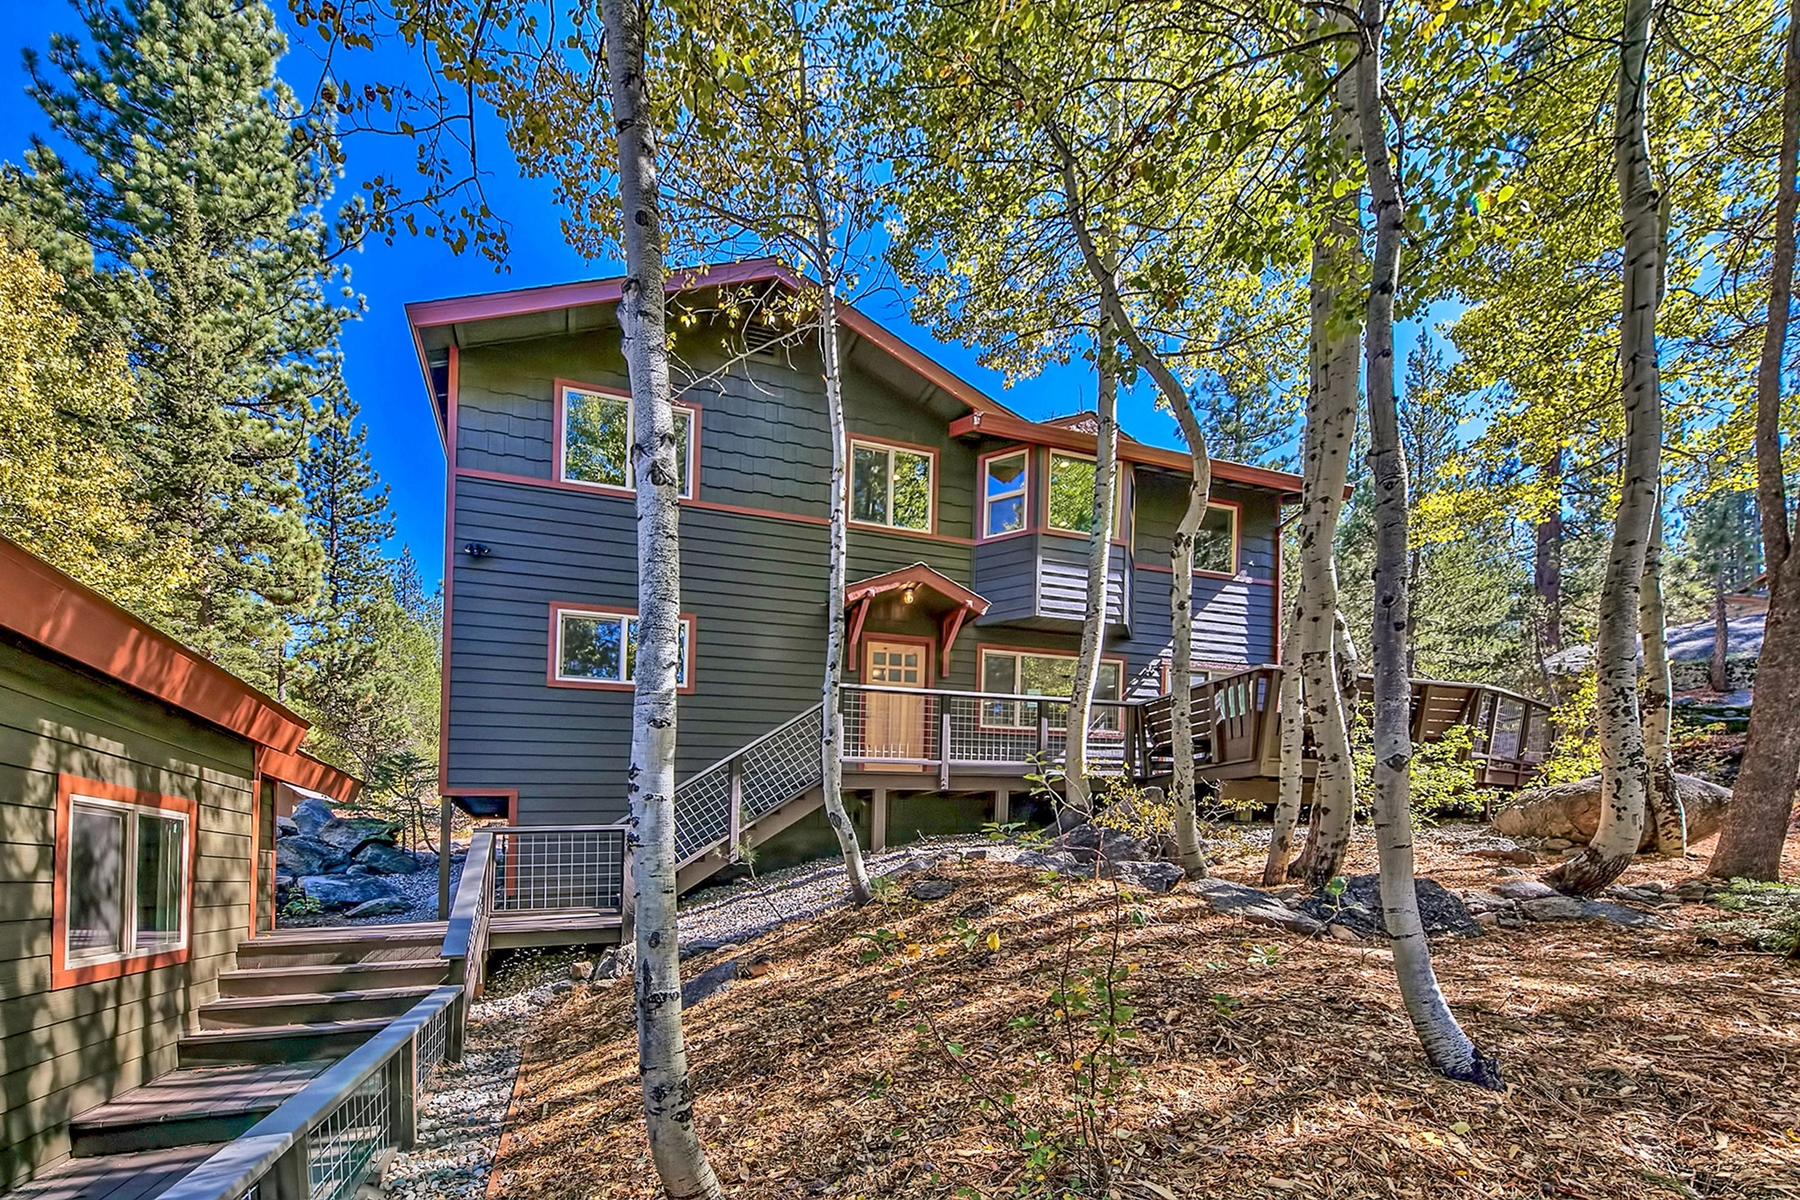 Single Family Home for Active at 2165 Pinewood Drive, South Lake Tahoe, Ca 96150 2165 Pinewood Drive South Lake Tahoe, California 96150 United States